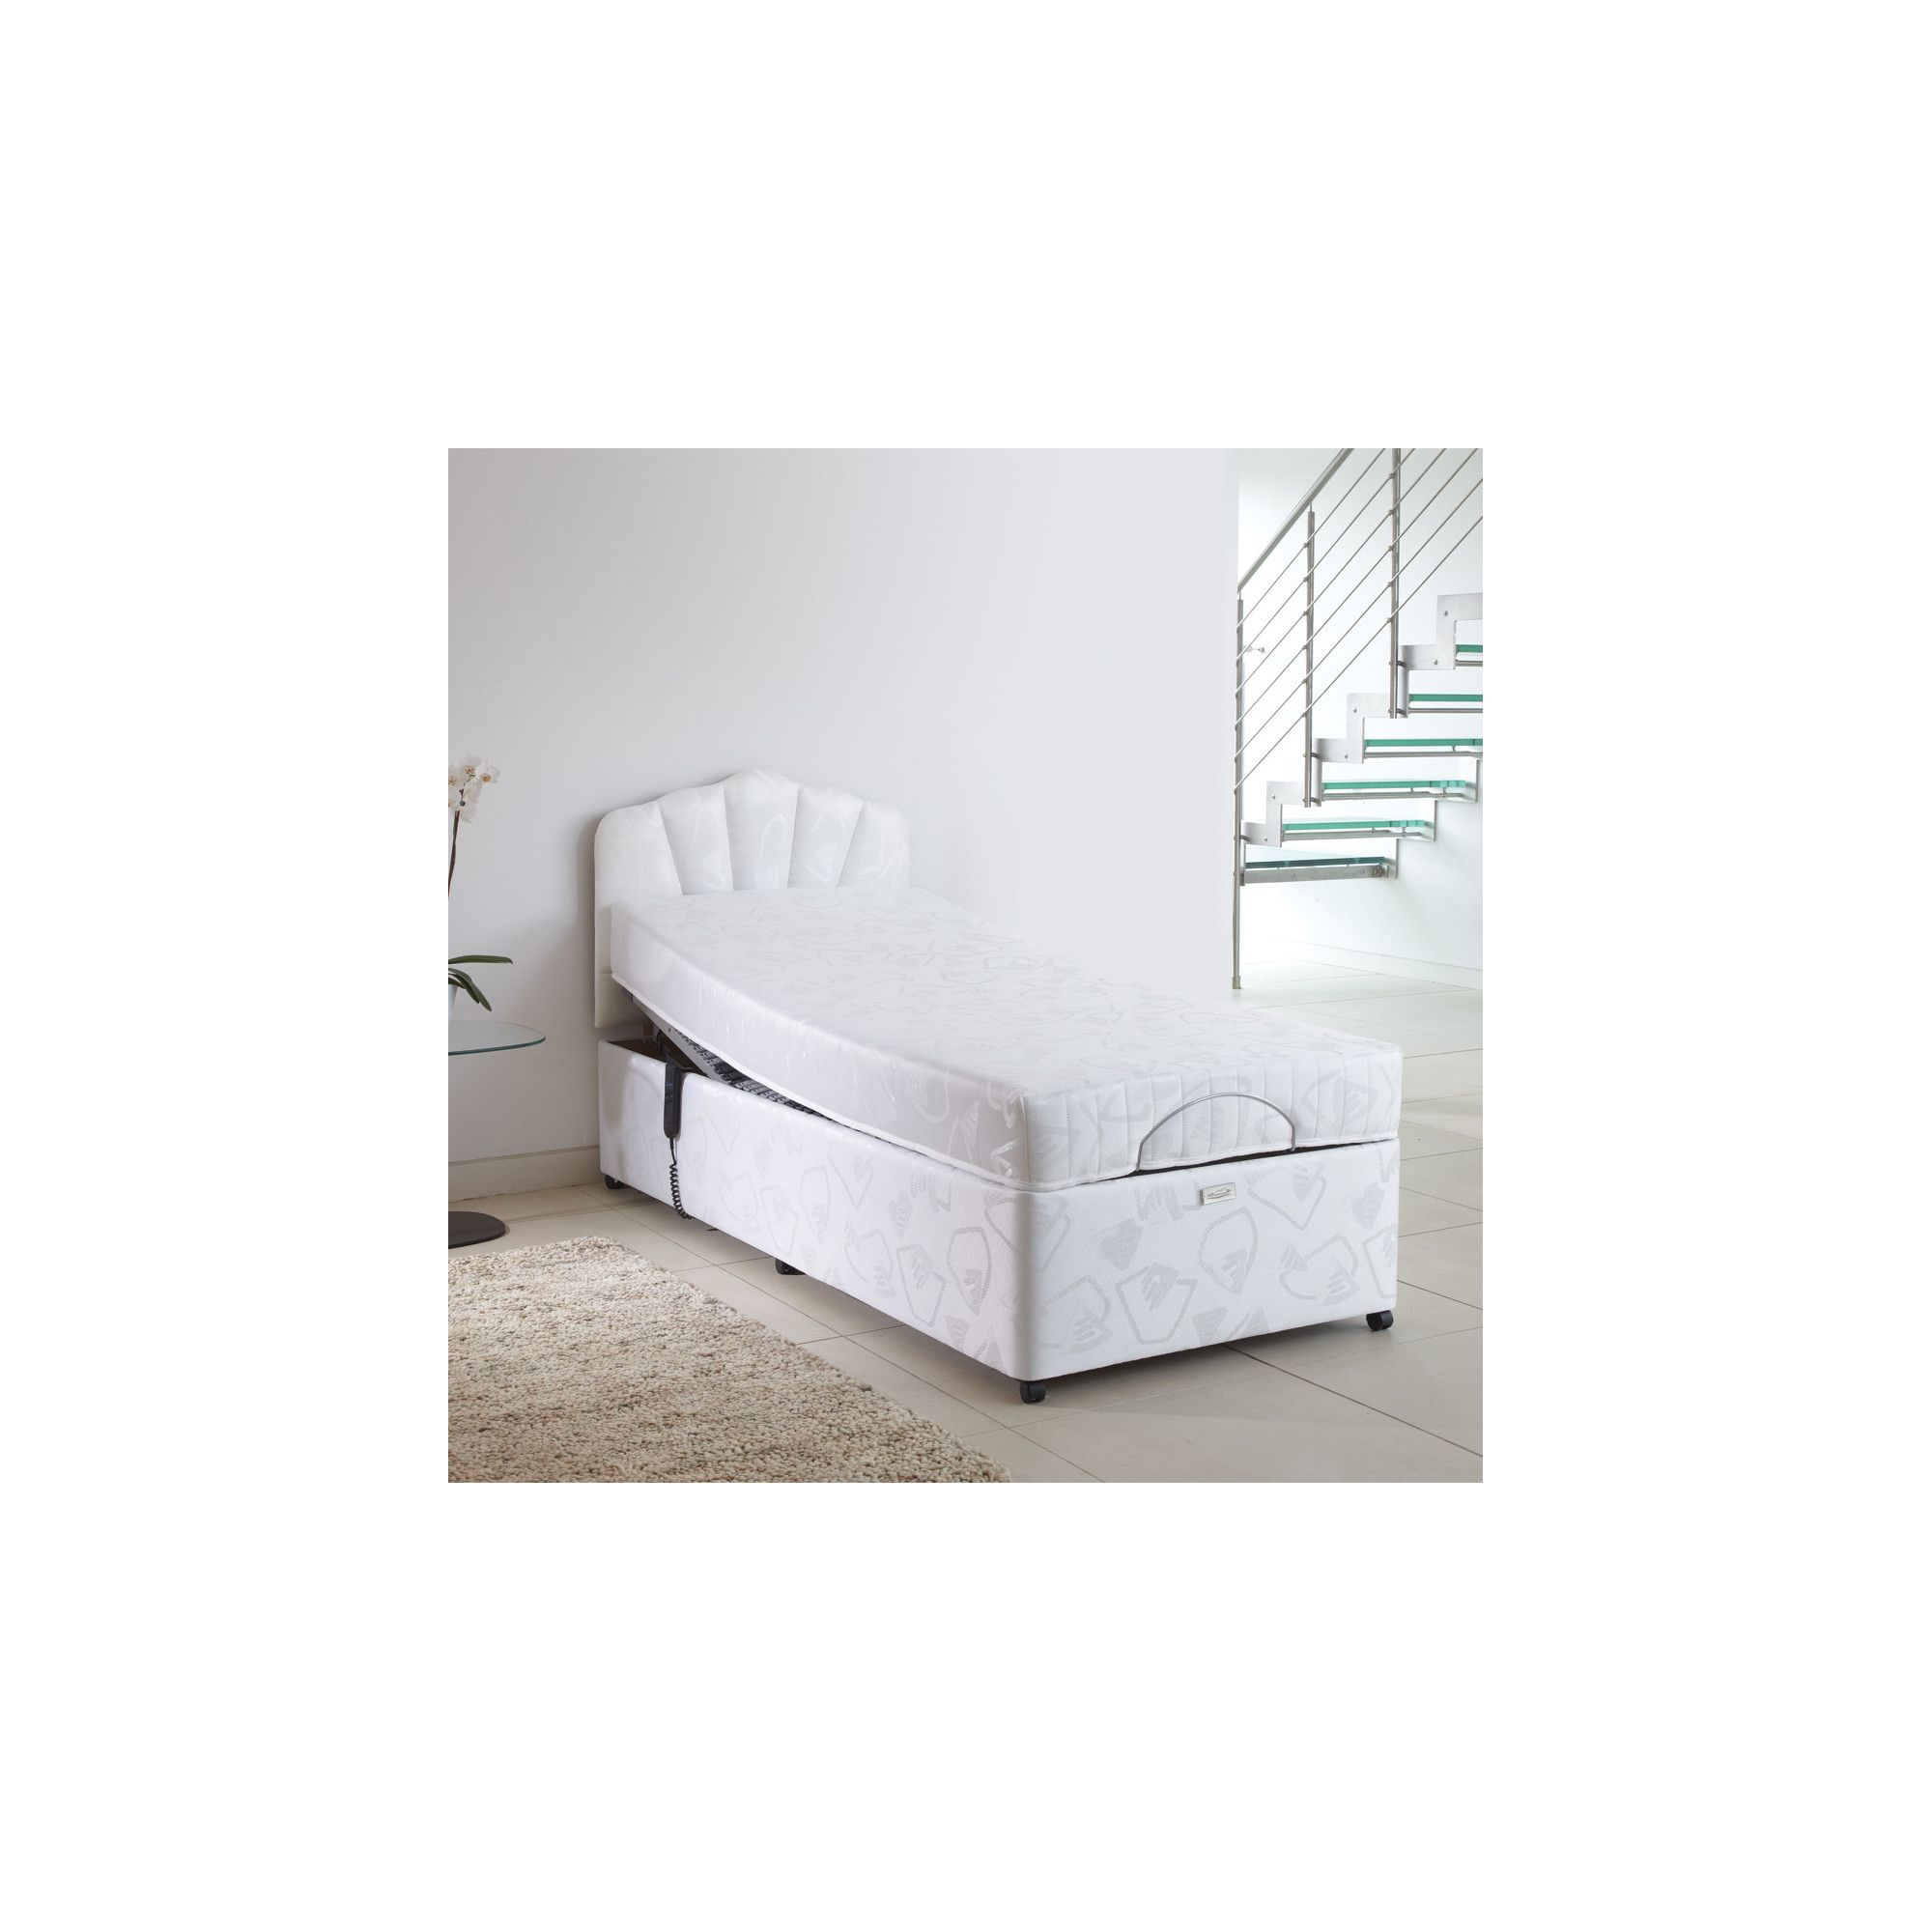 Bodyease Adjustable Deep Base Set with Electro Neptune Mattress - Extra Small Single - No Drawer at Tesco Direct